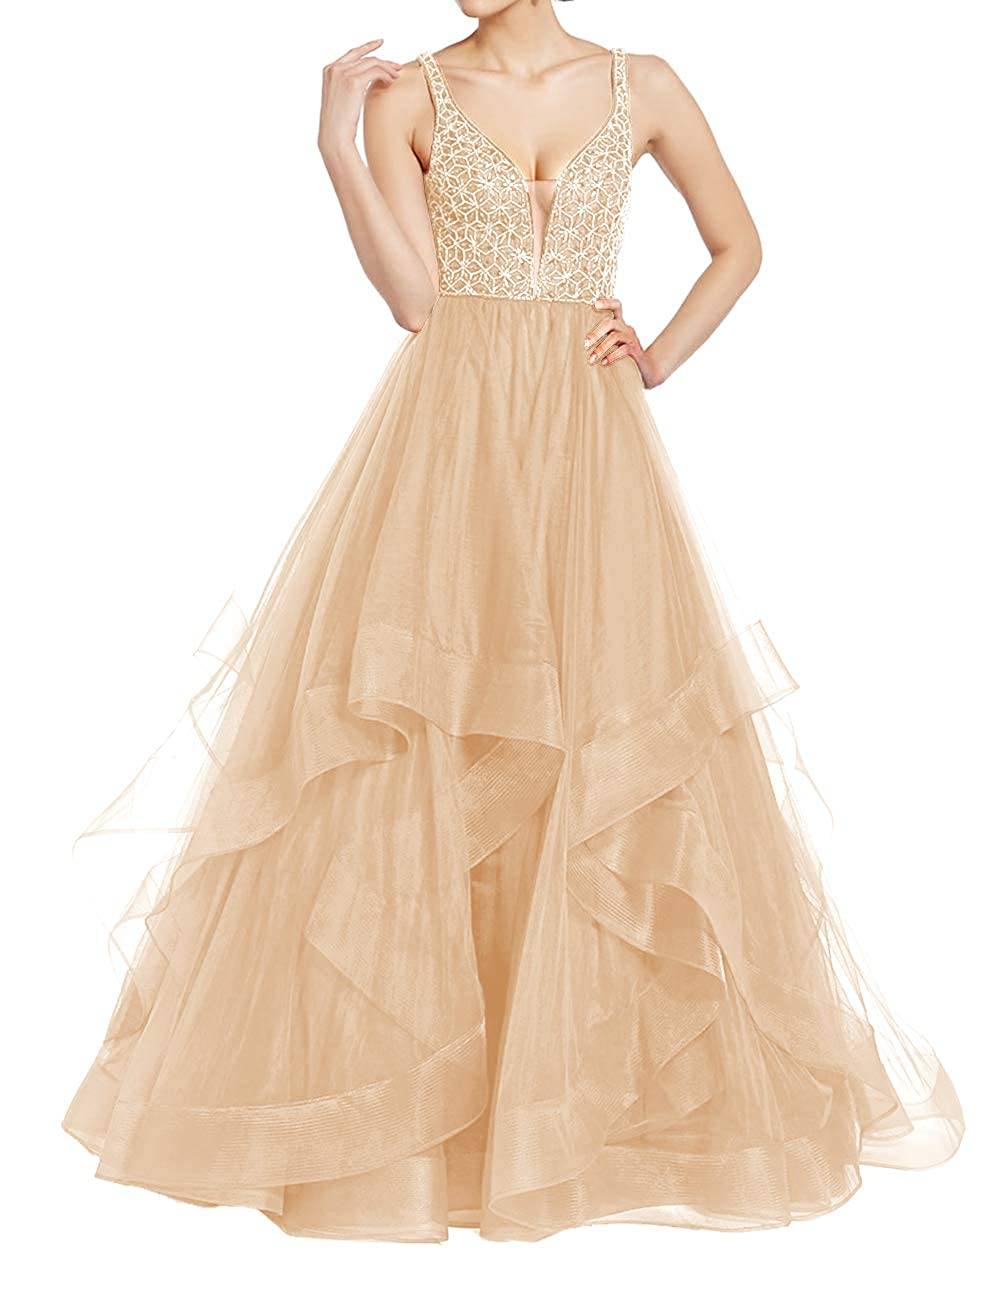 Champagne Uther Elegant Tulle Evening Ball Gowns Long Beaded Formal Prom Party Dresses